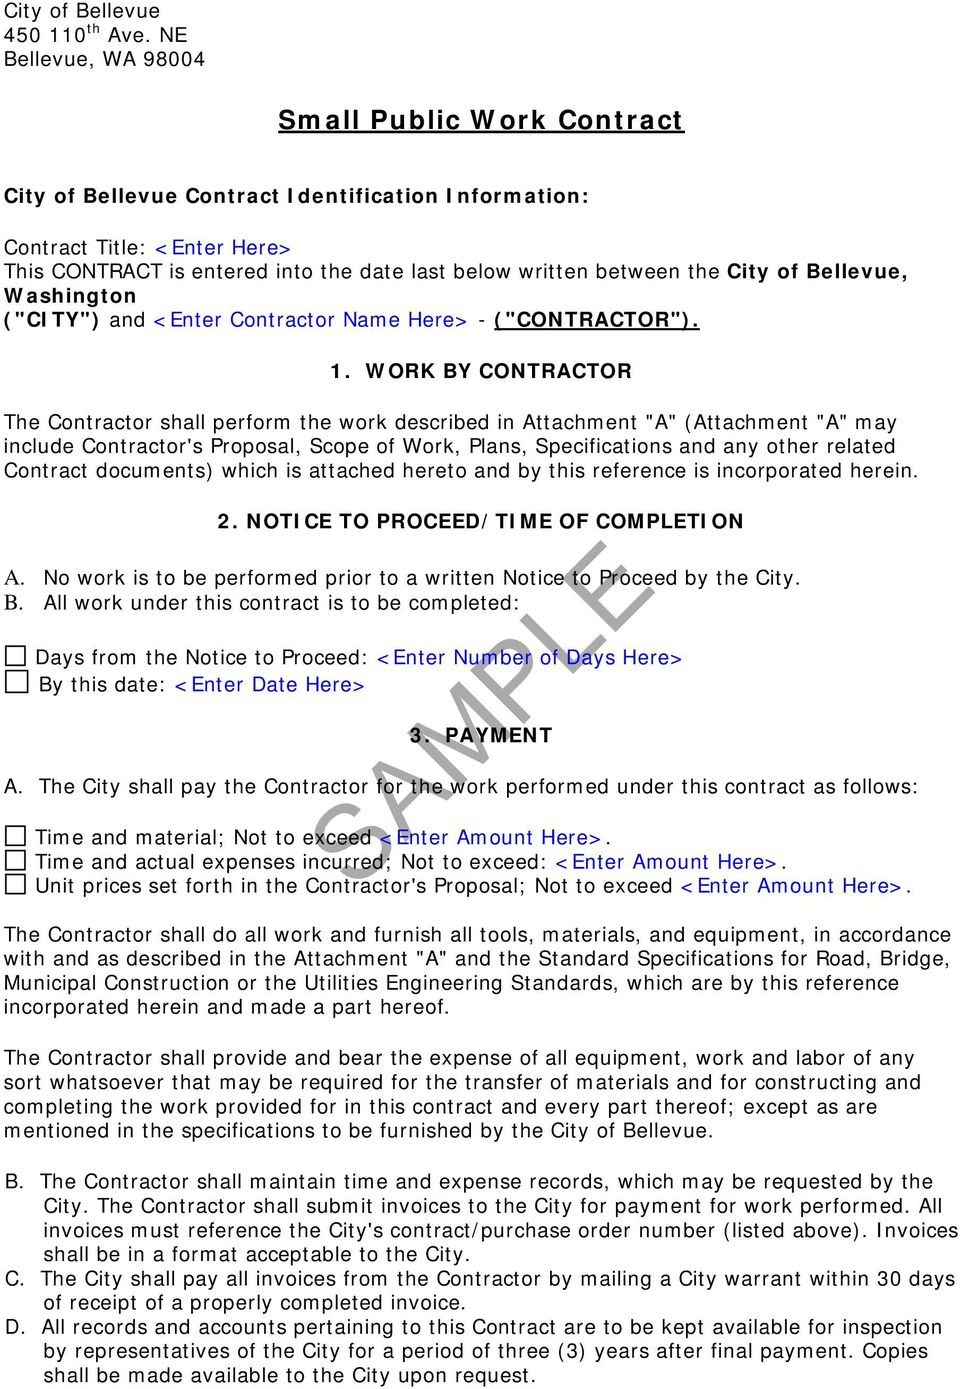 "the City of Bellevue, Washington (""CITY"") and <Enter Contractor Name Here> - (""CONTRACTOR""). 1."